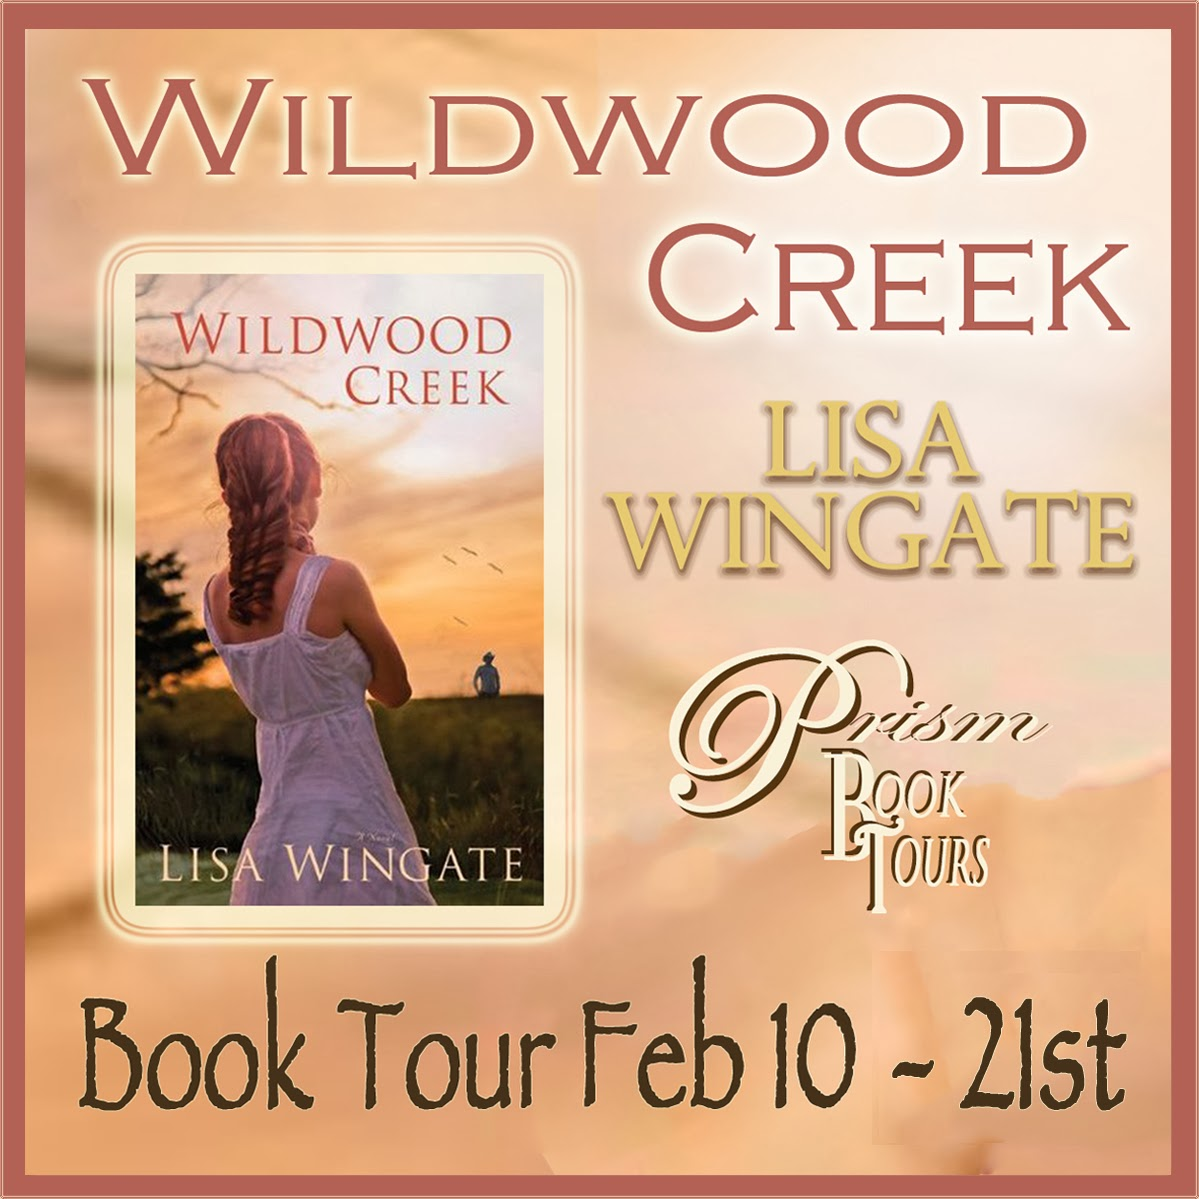 Wildwood Creek by Lisa Wingate